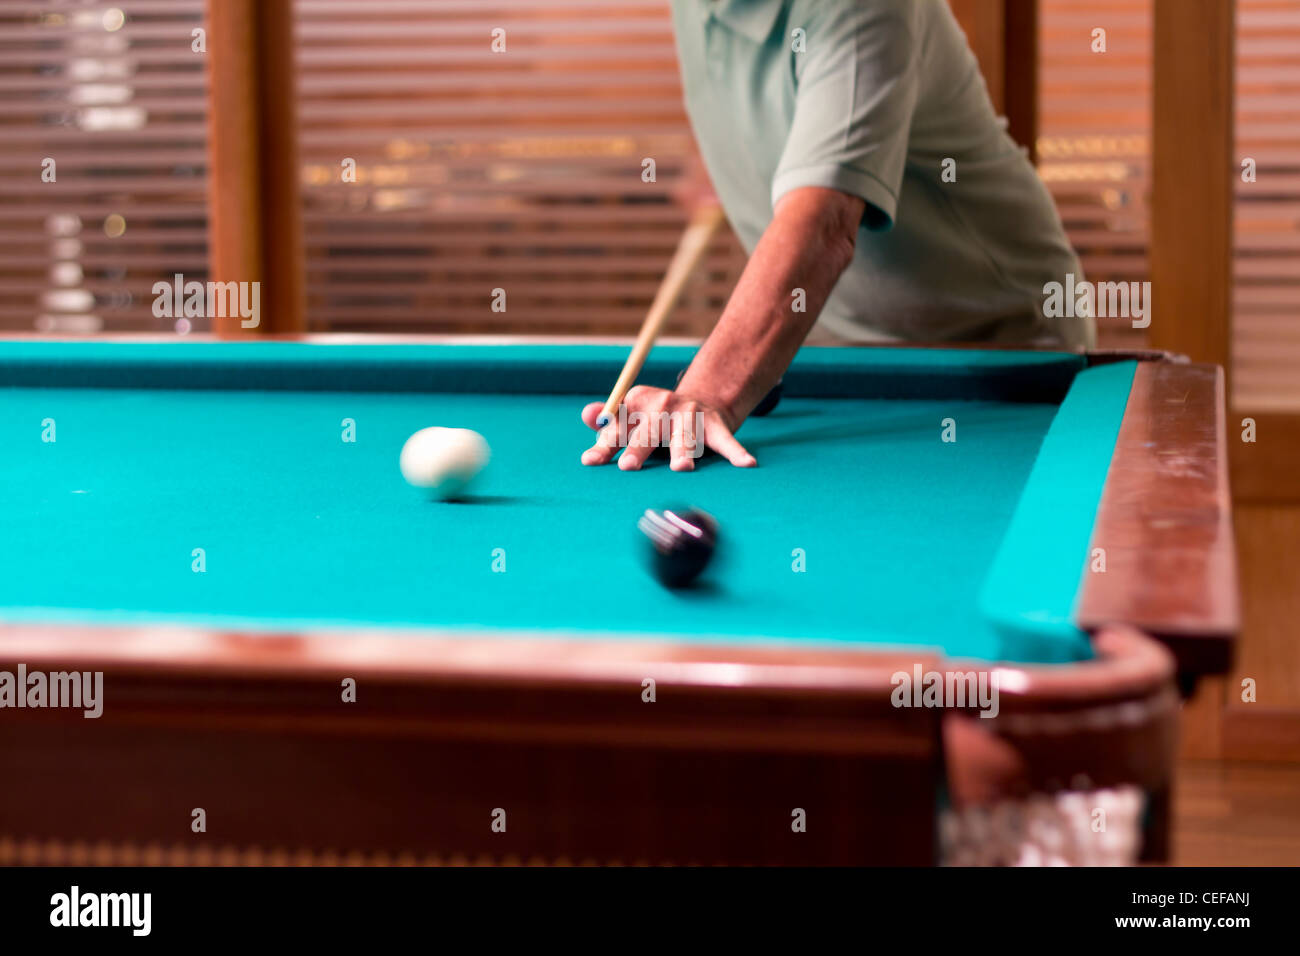 A man playing the last black ball of a snooker game. Motion effect on the balls. - Stock Image